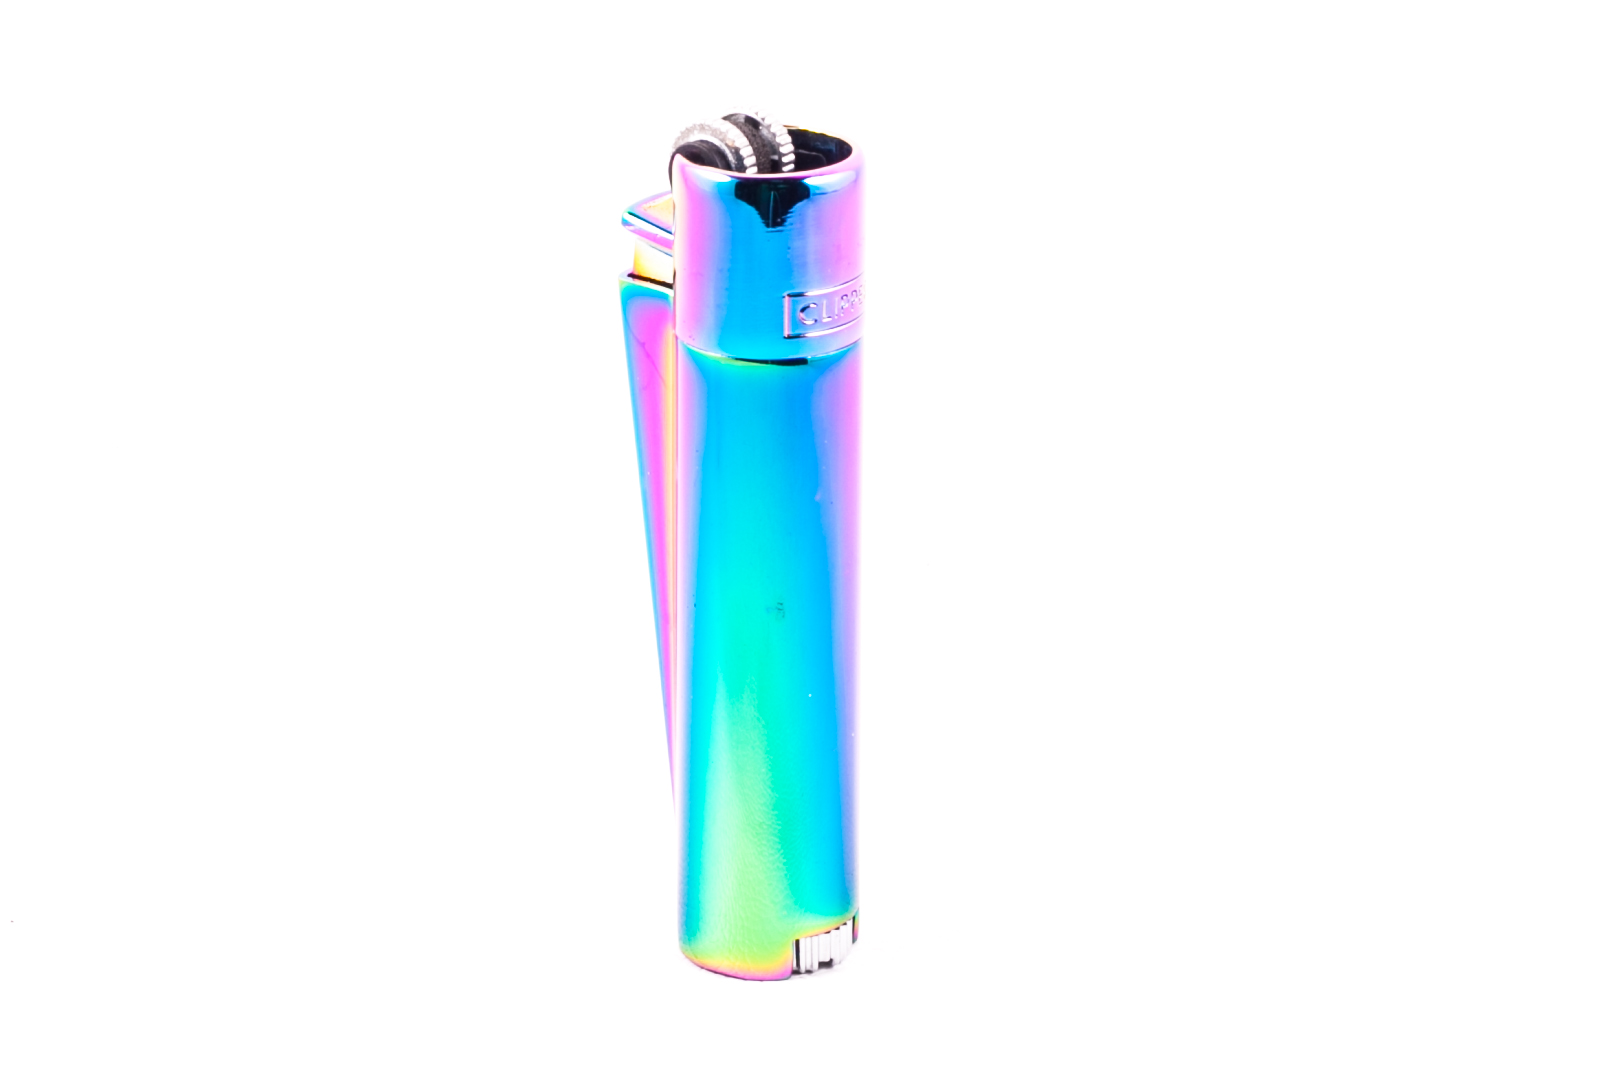 lighters wallpapers high quality download free